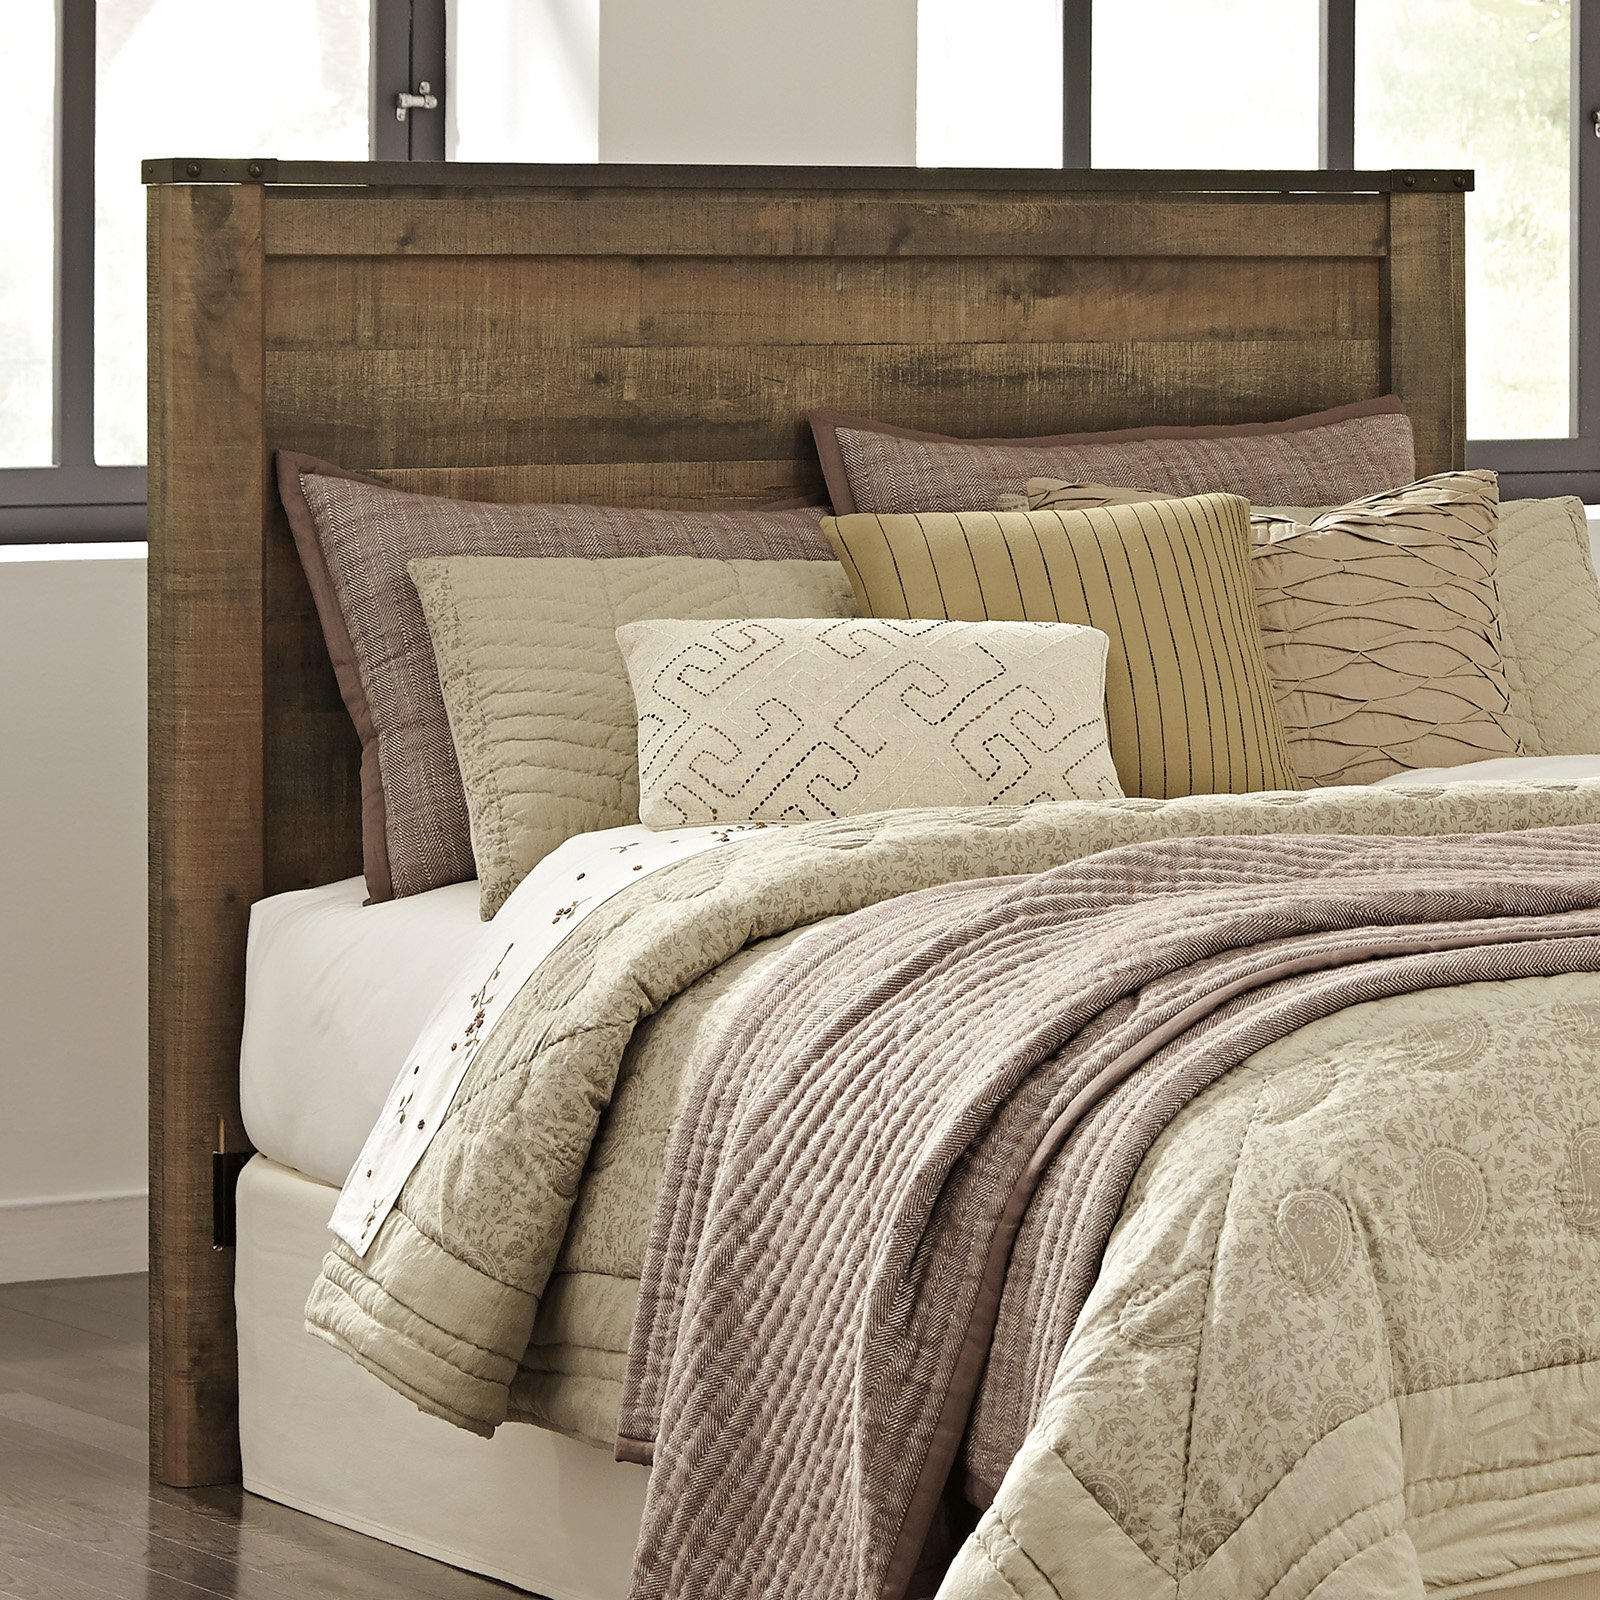 Signature design by ashley trinell panel headboard queen